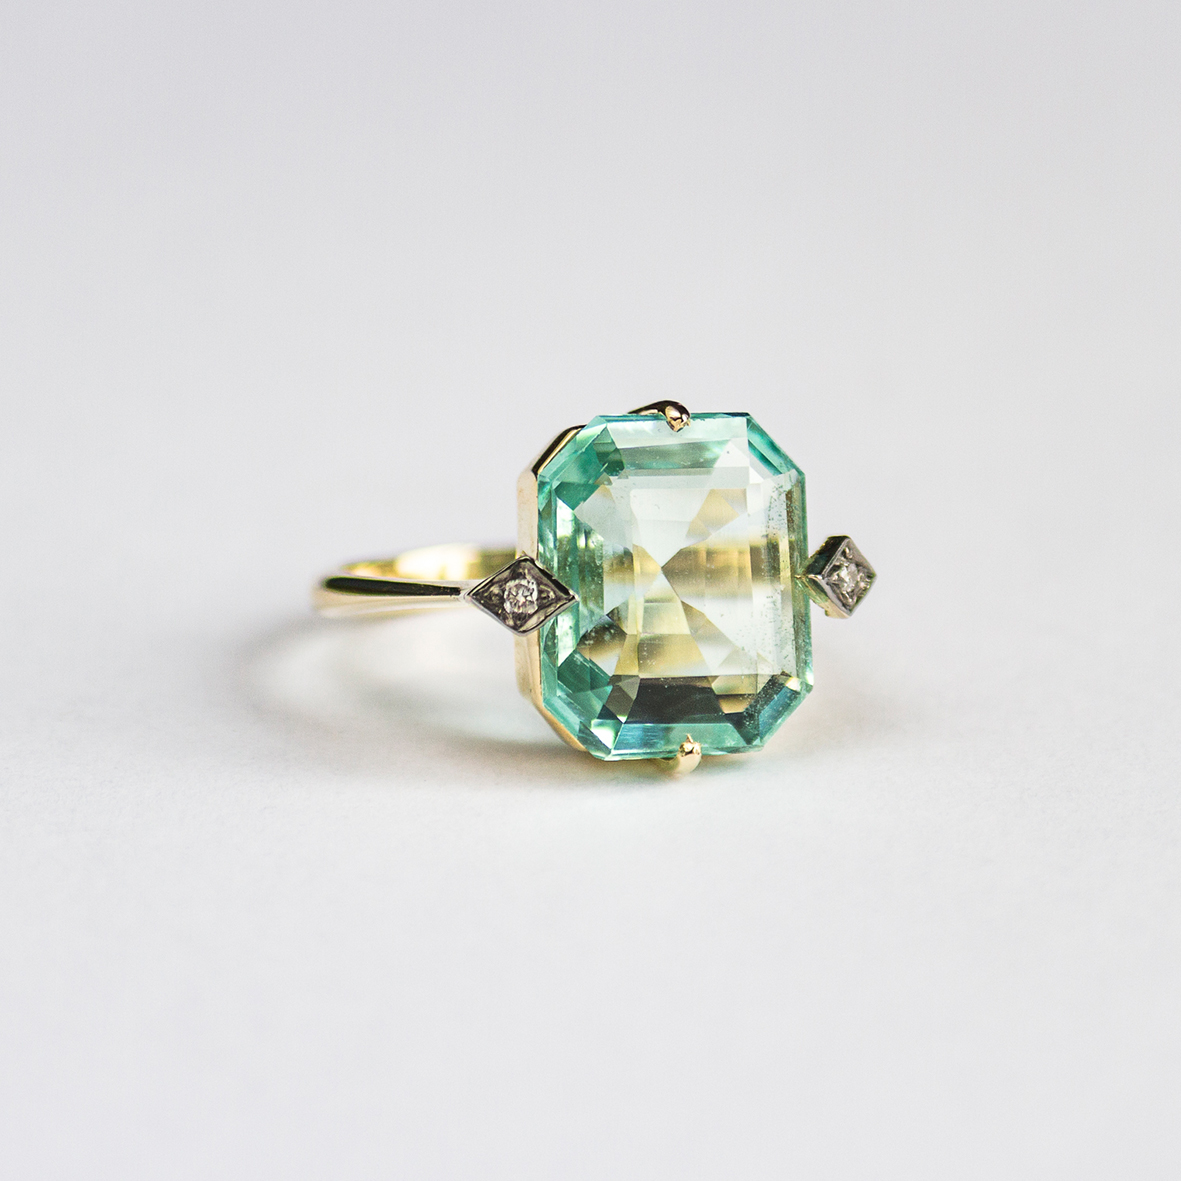 1. OONA_gems of ceylon_ficha1_green aquamarine ring